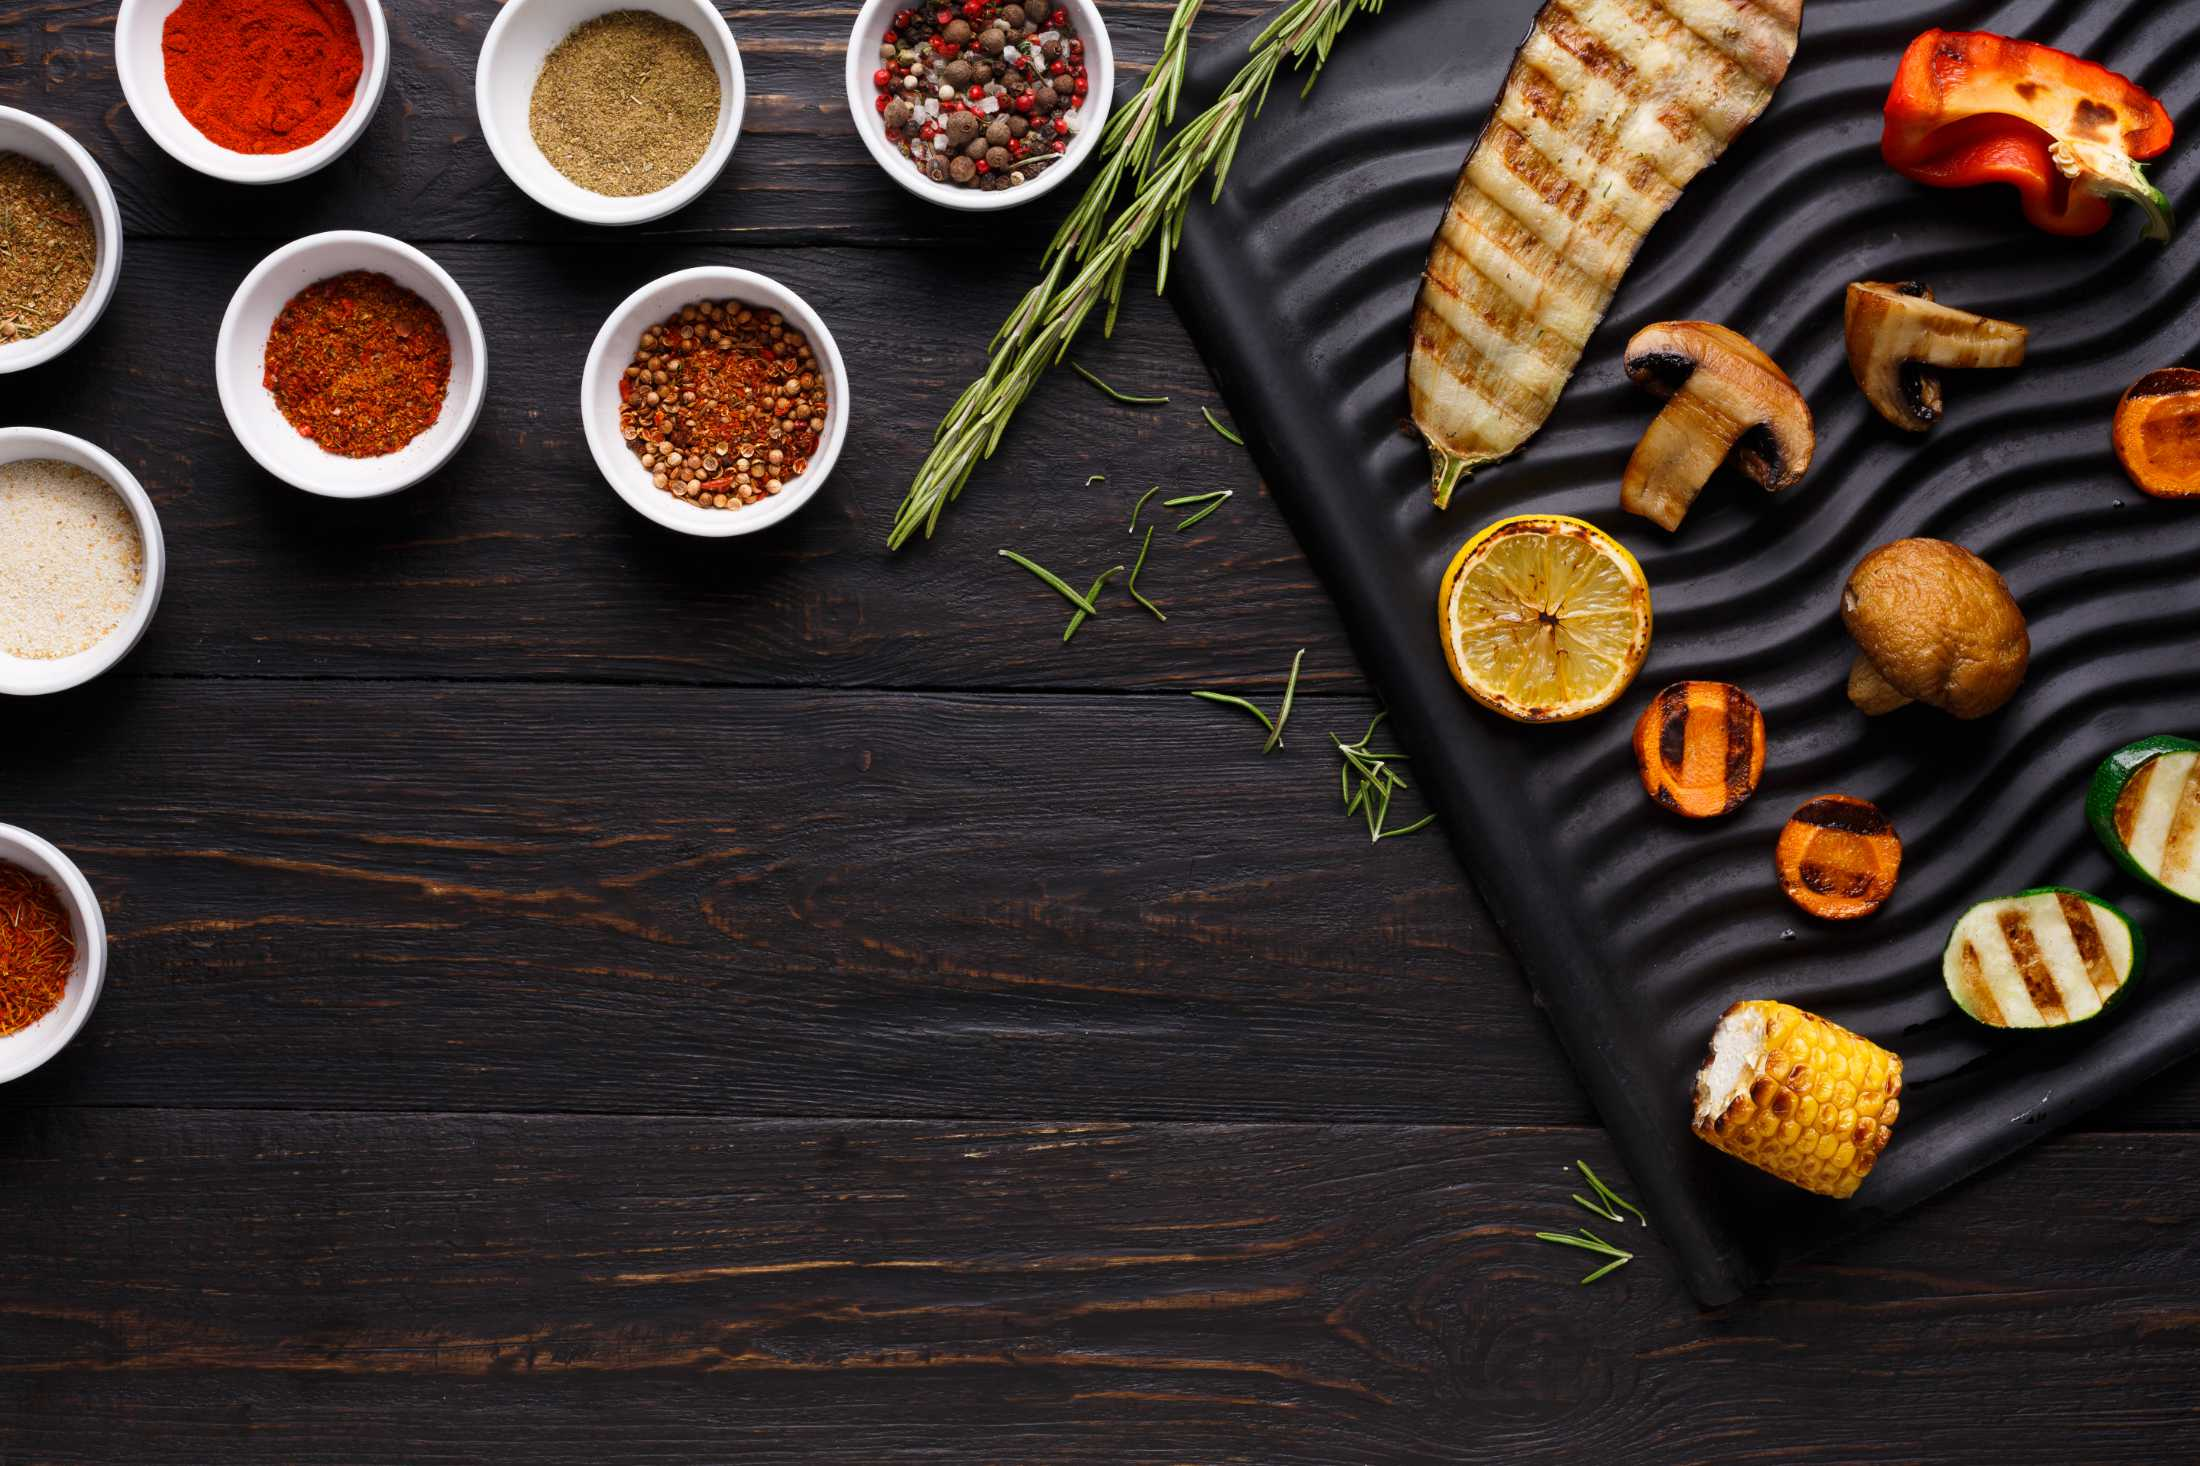 grilled-vegetables-with-spices-top-view-K5STZLW.jpg